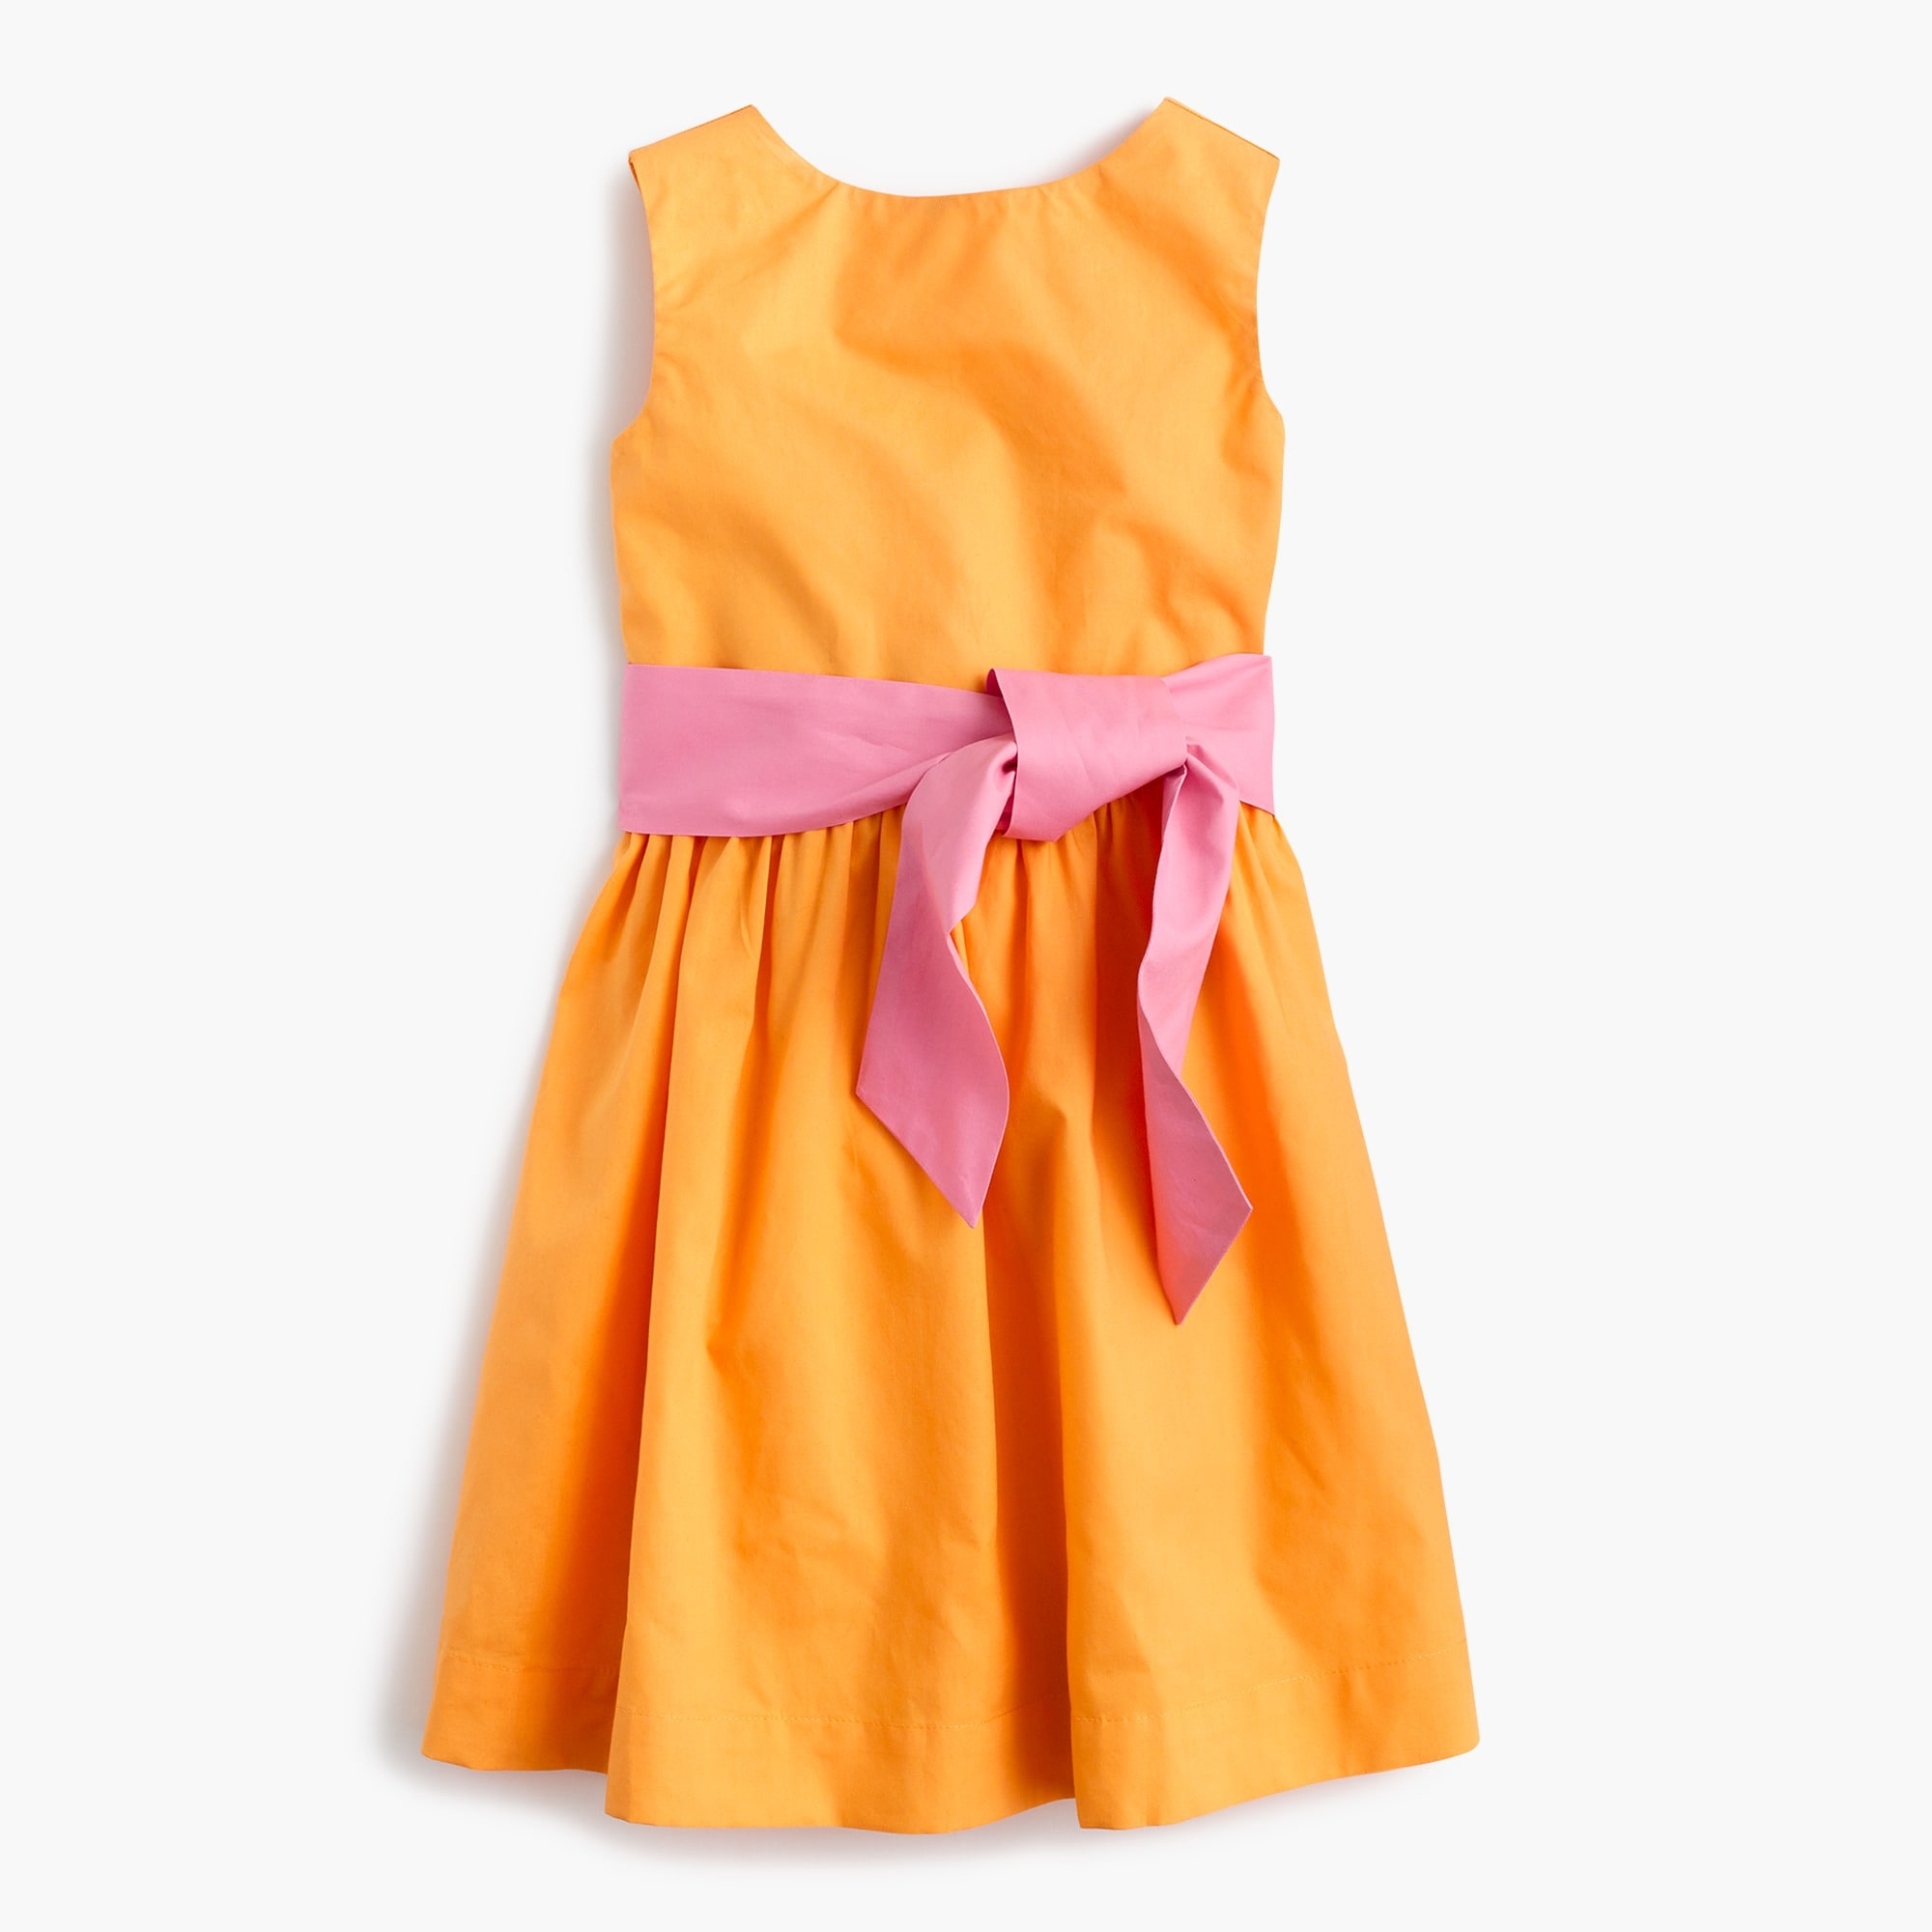 Girls' colorblock dress with ties girl new arrivals c